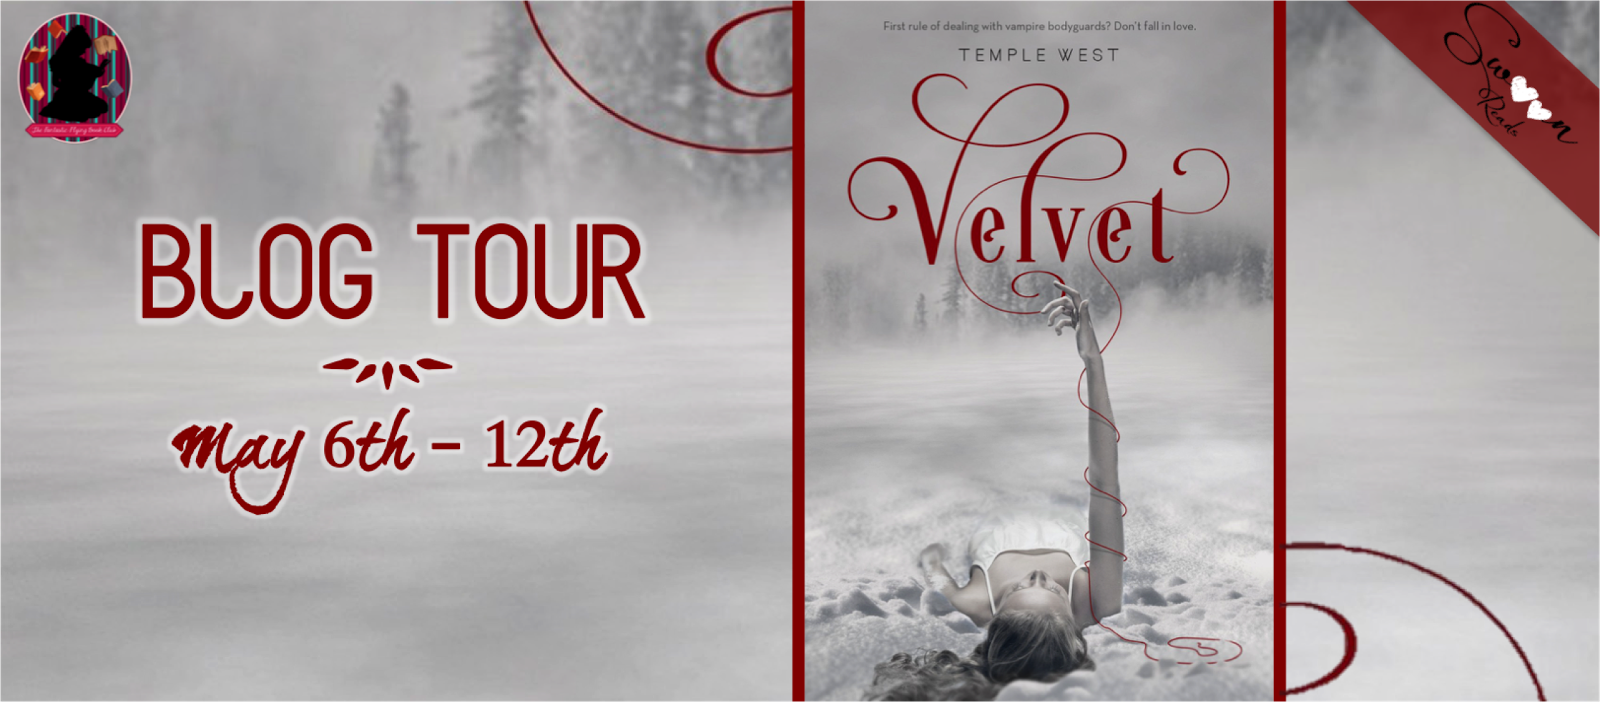 http://fantasticflyingbookclub.blogspot.com/2015/03/tour-schedule-velvet-by-temple-west.html